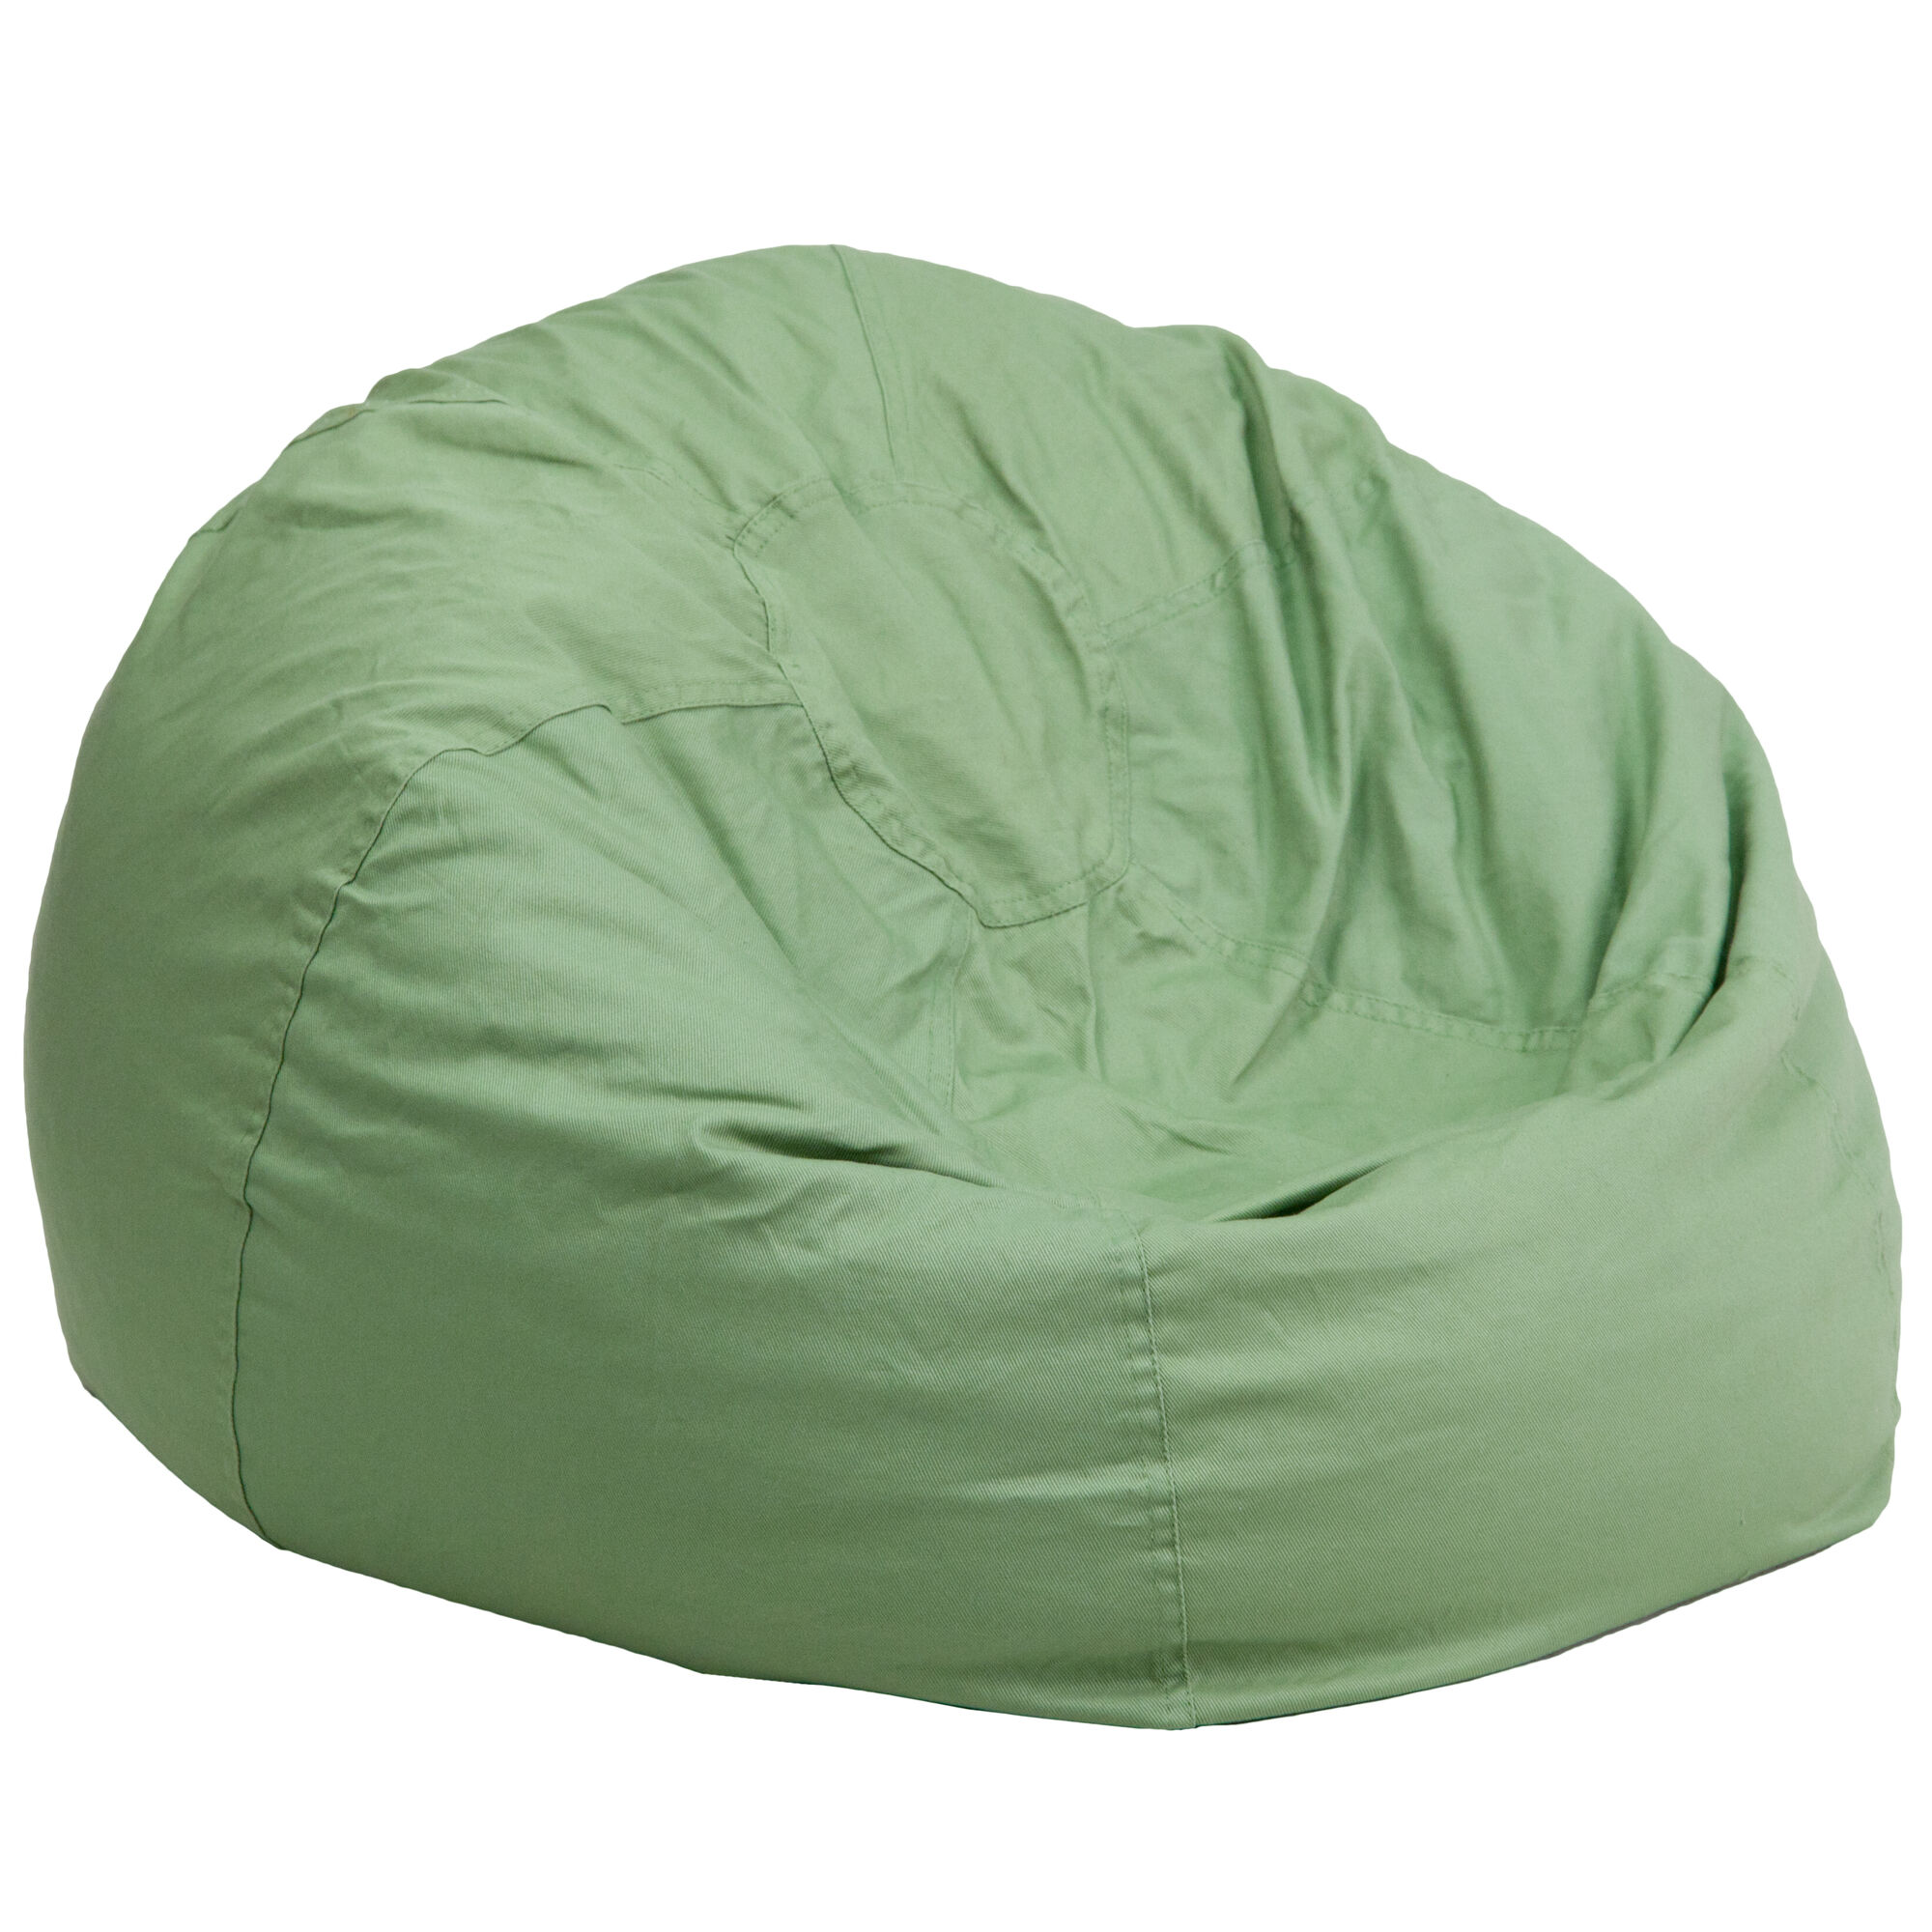 Marvelous Oversized Solid Green Bean Bag Chair For Kids And Adults Ocoug Best Dining Table And Chair Ideas Images Ocougorg